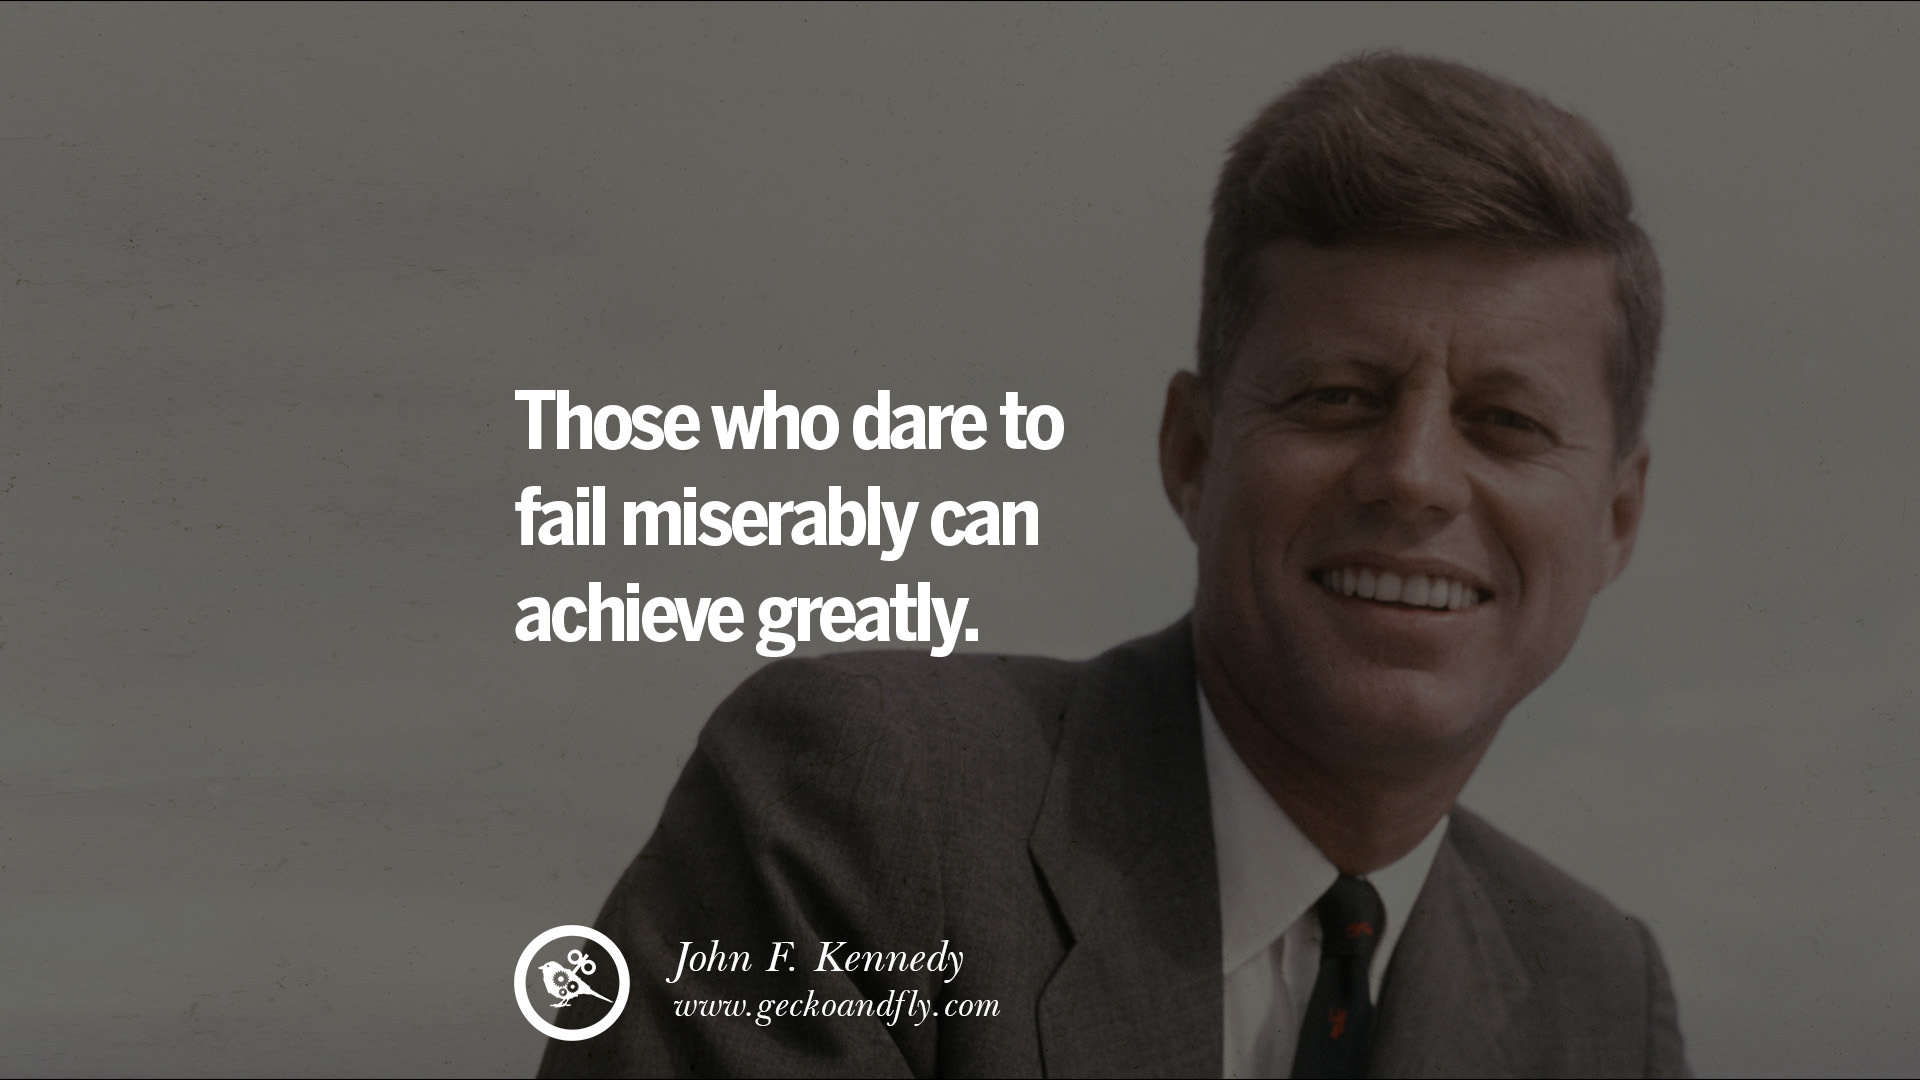 Motivational Sports Quotes Wallpaper 16 Famous President John F Kennedy Quotes On Freedom